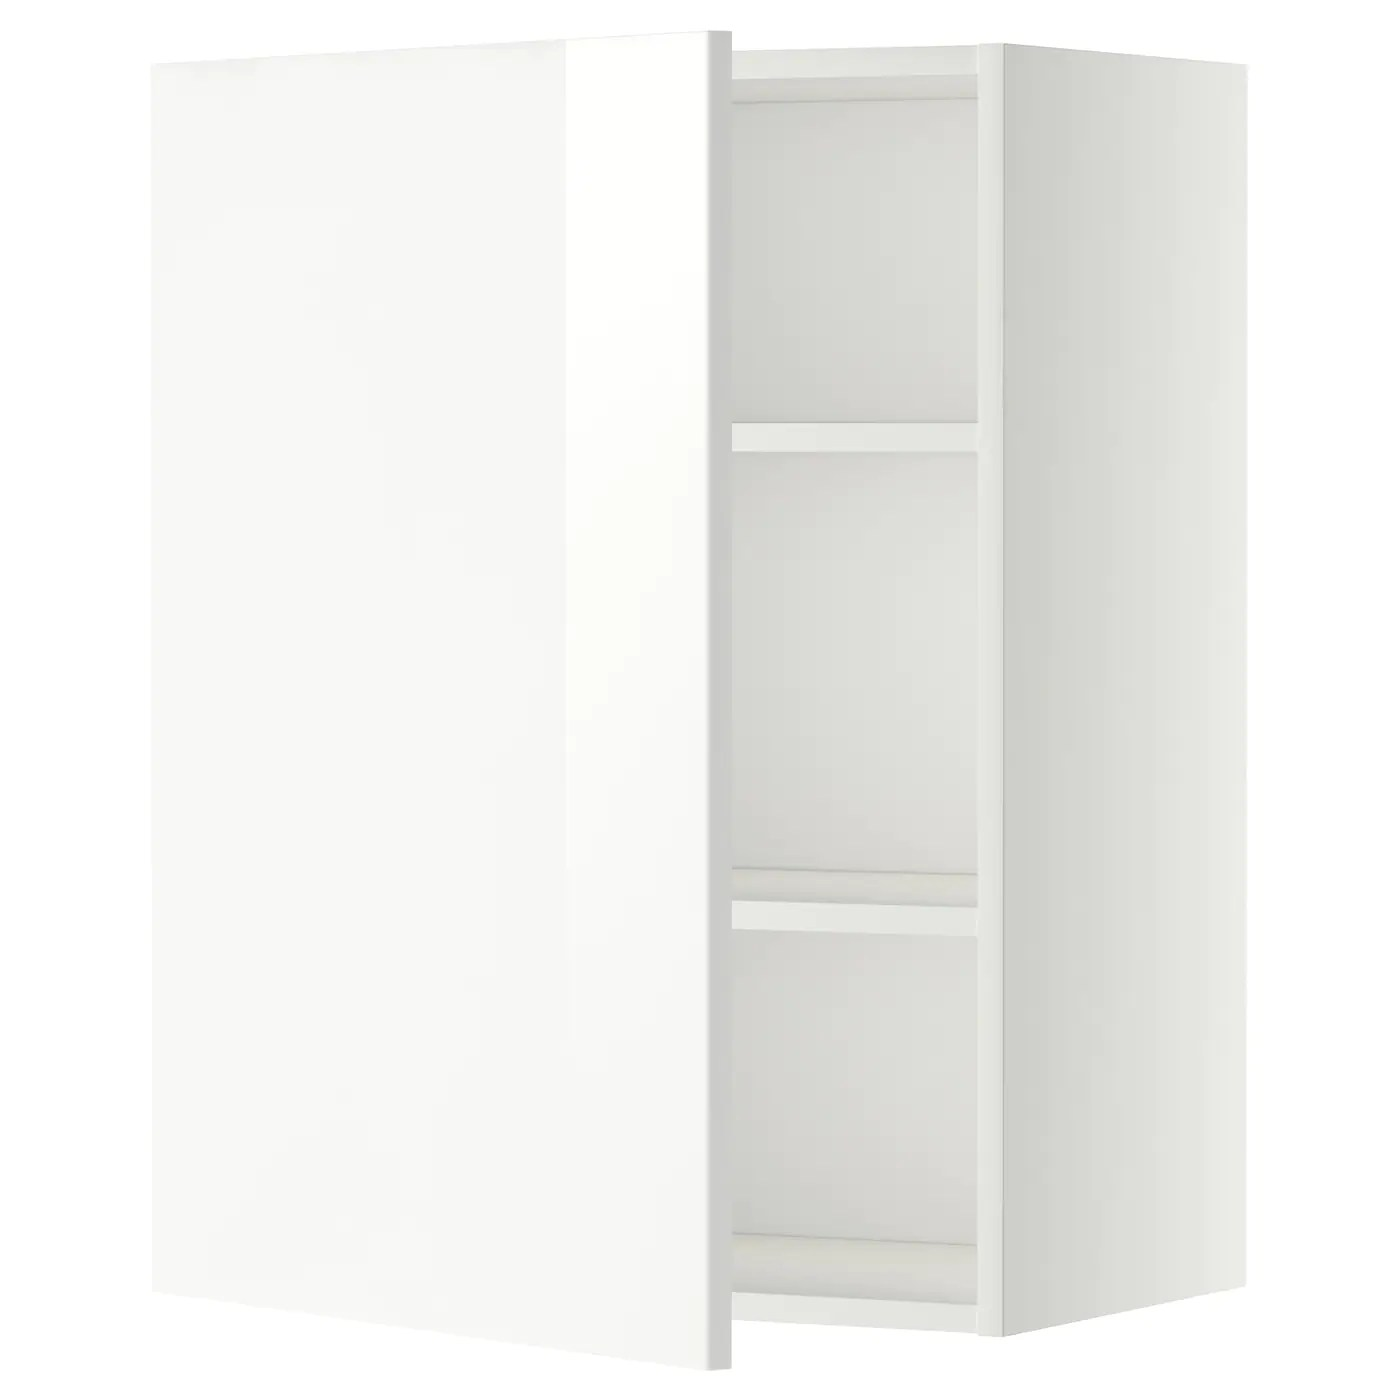 Metod Ikea Metod Wall Cabinet With Shelves White Ringhult White